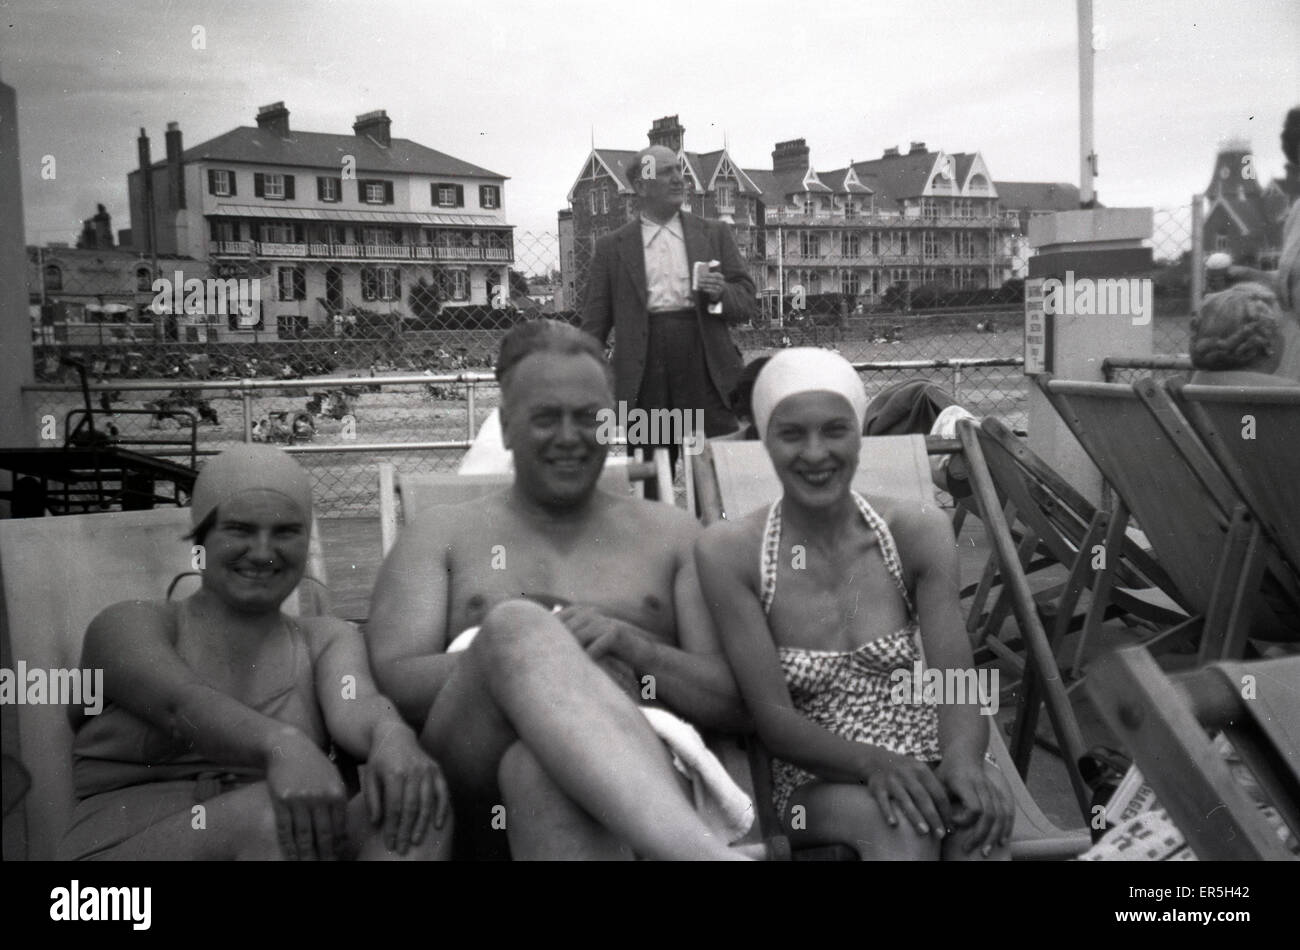 Group of Holidaymakers, Southend on Sea, Essex, England.  1950s Stock Photo